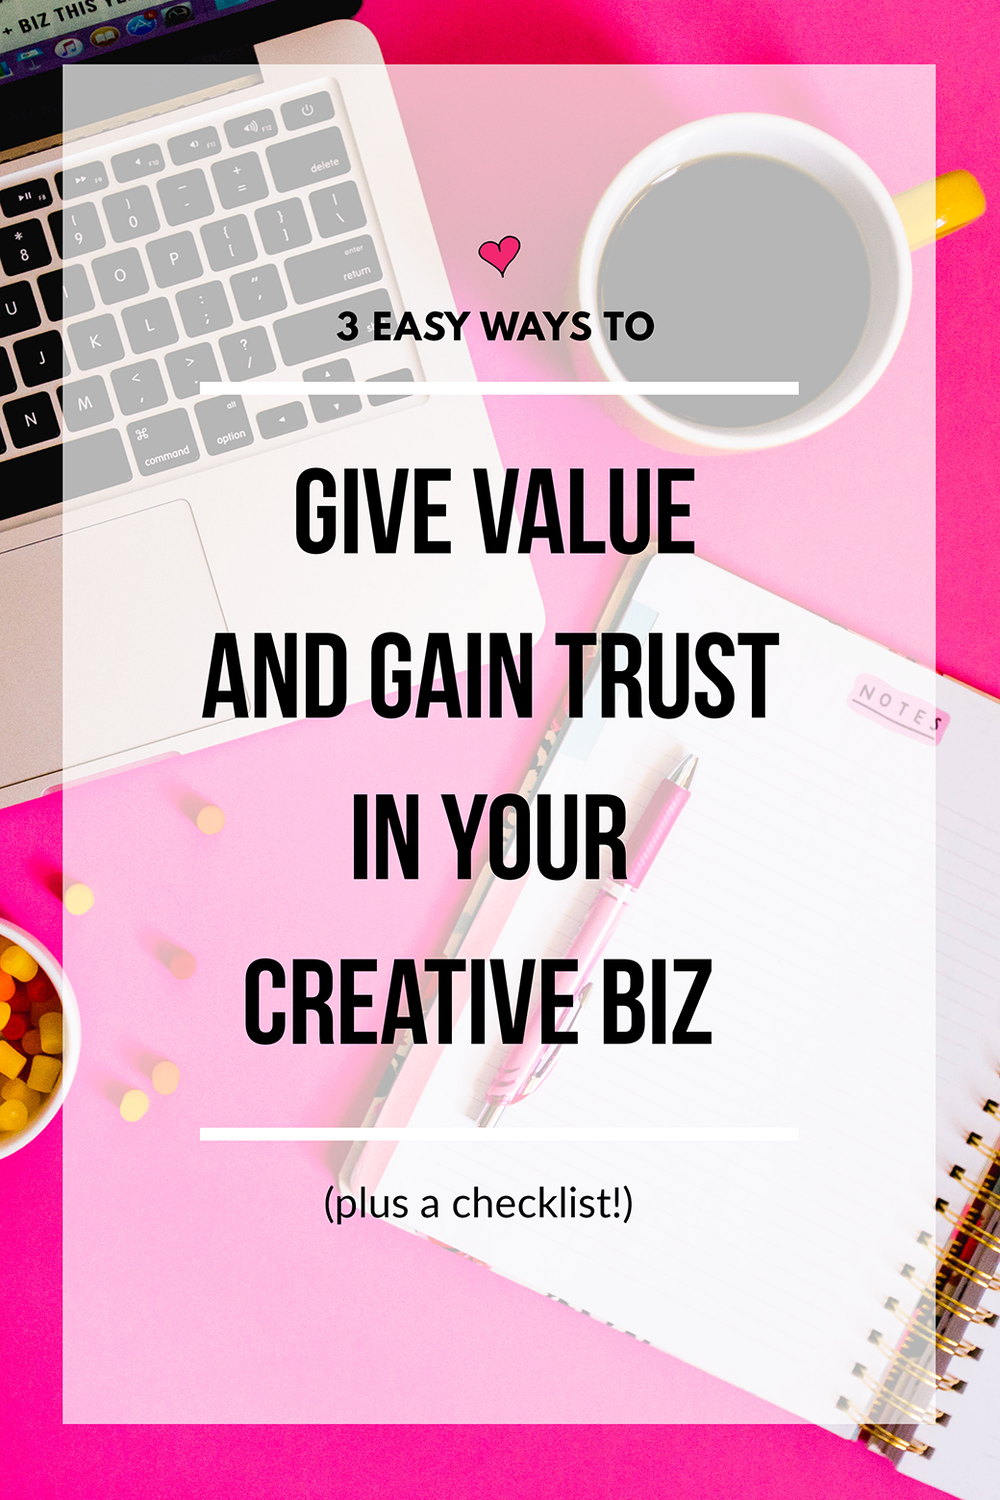 3 Easy ways to give value (and gain trust!) in your business, plus a FREE checklist with 25 more ideas to get your creative wheels turning!